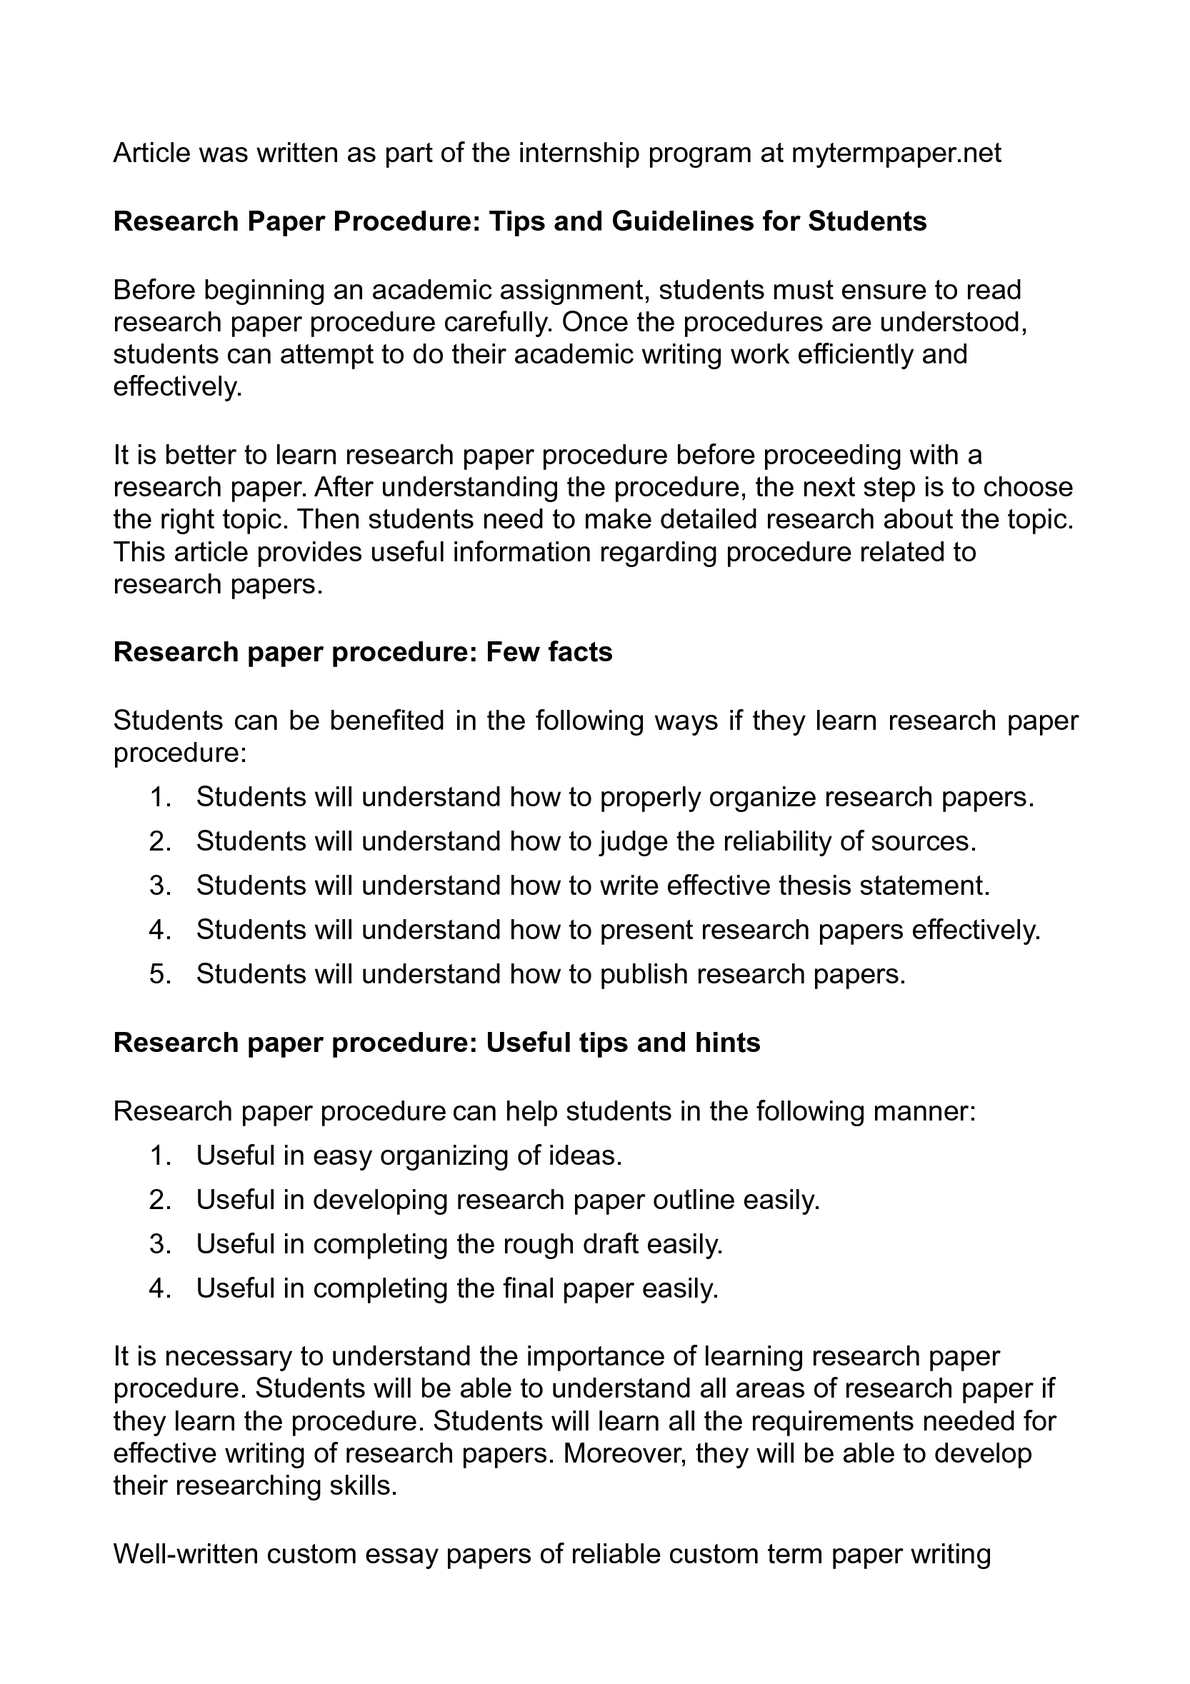 018 How To Do Research Paper Marvelous Read Papers Fast Outline Write A Owl Purdue